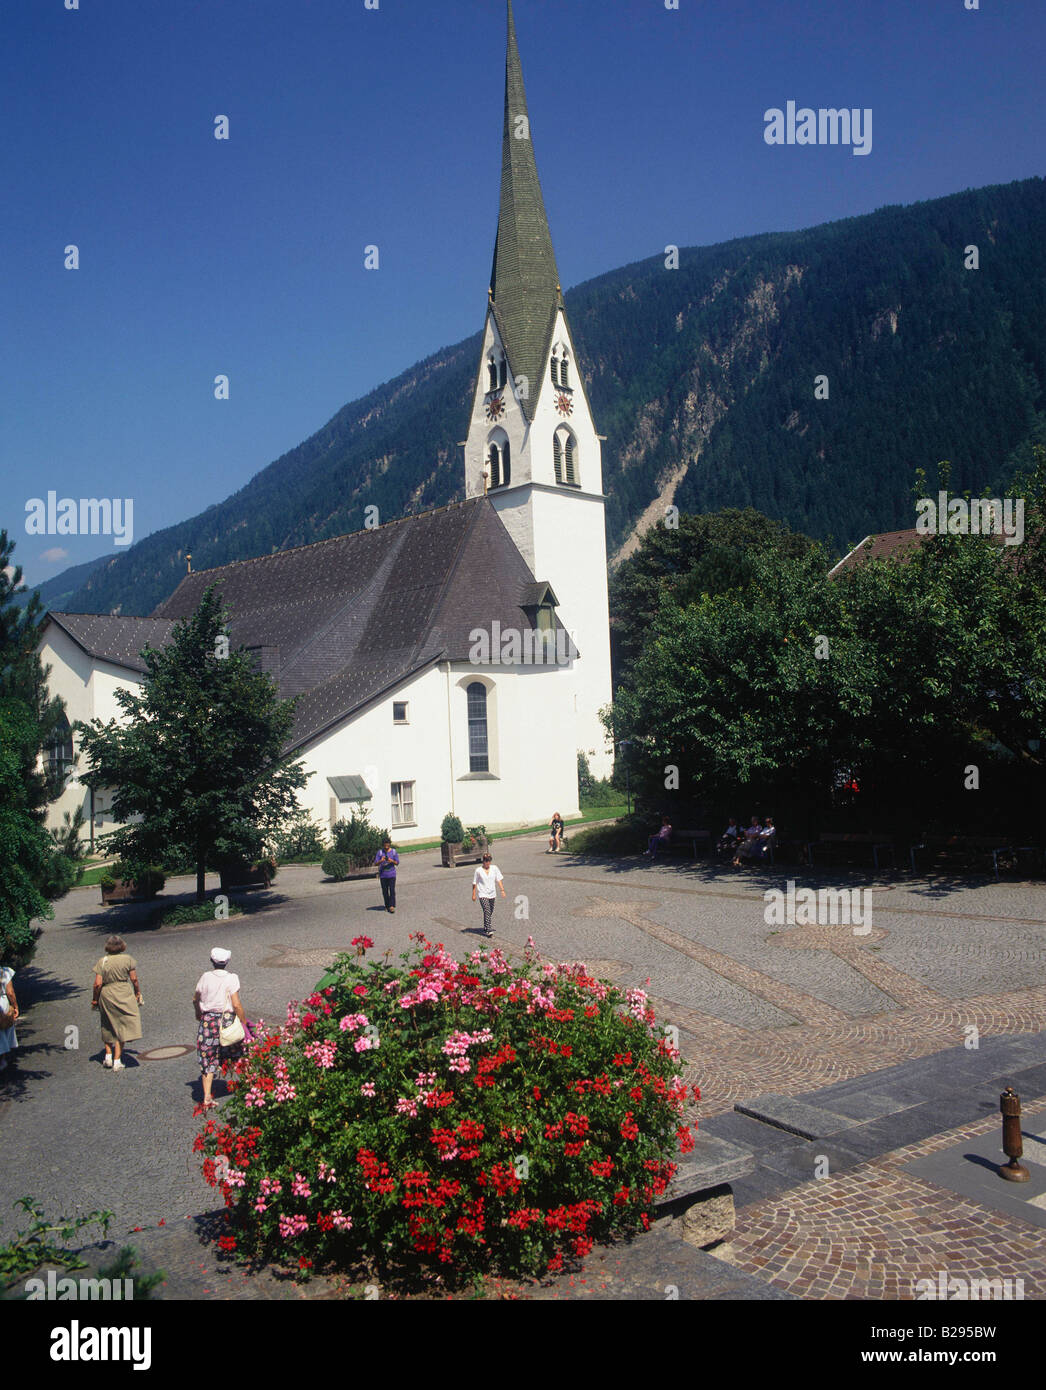 AUSTRIA Tirol Mayrhofen The Church Date 10 06 2008 Ref ZB704 114941 0001 COMPULSORY CREDIT World Pictures Photoshot - Stock Image